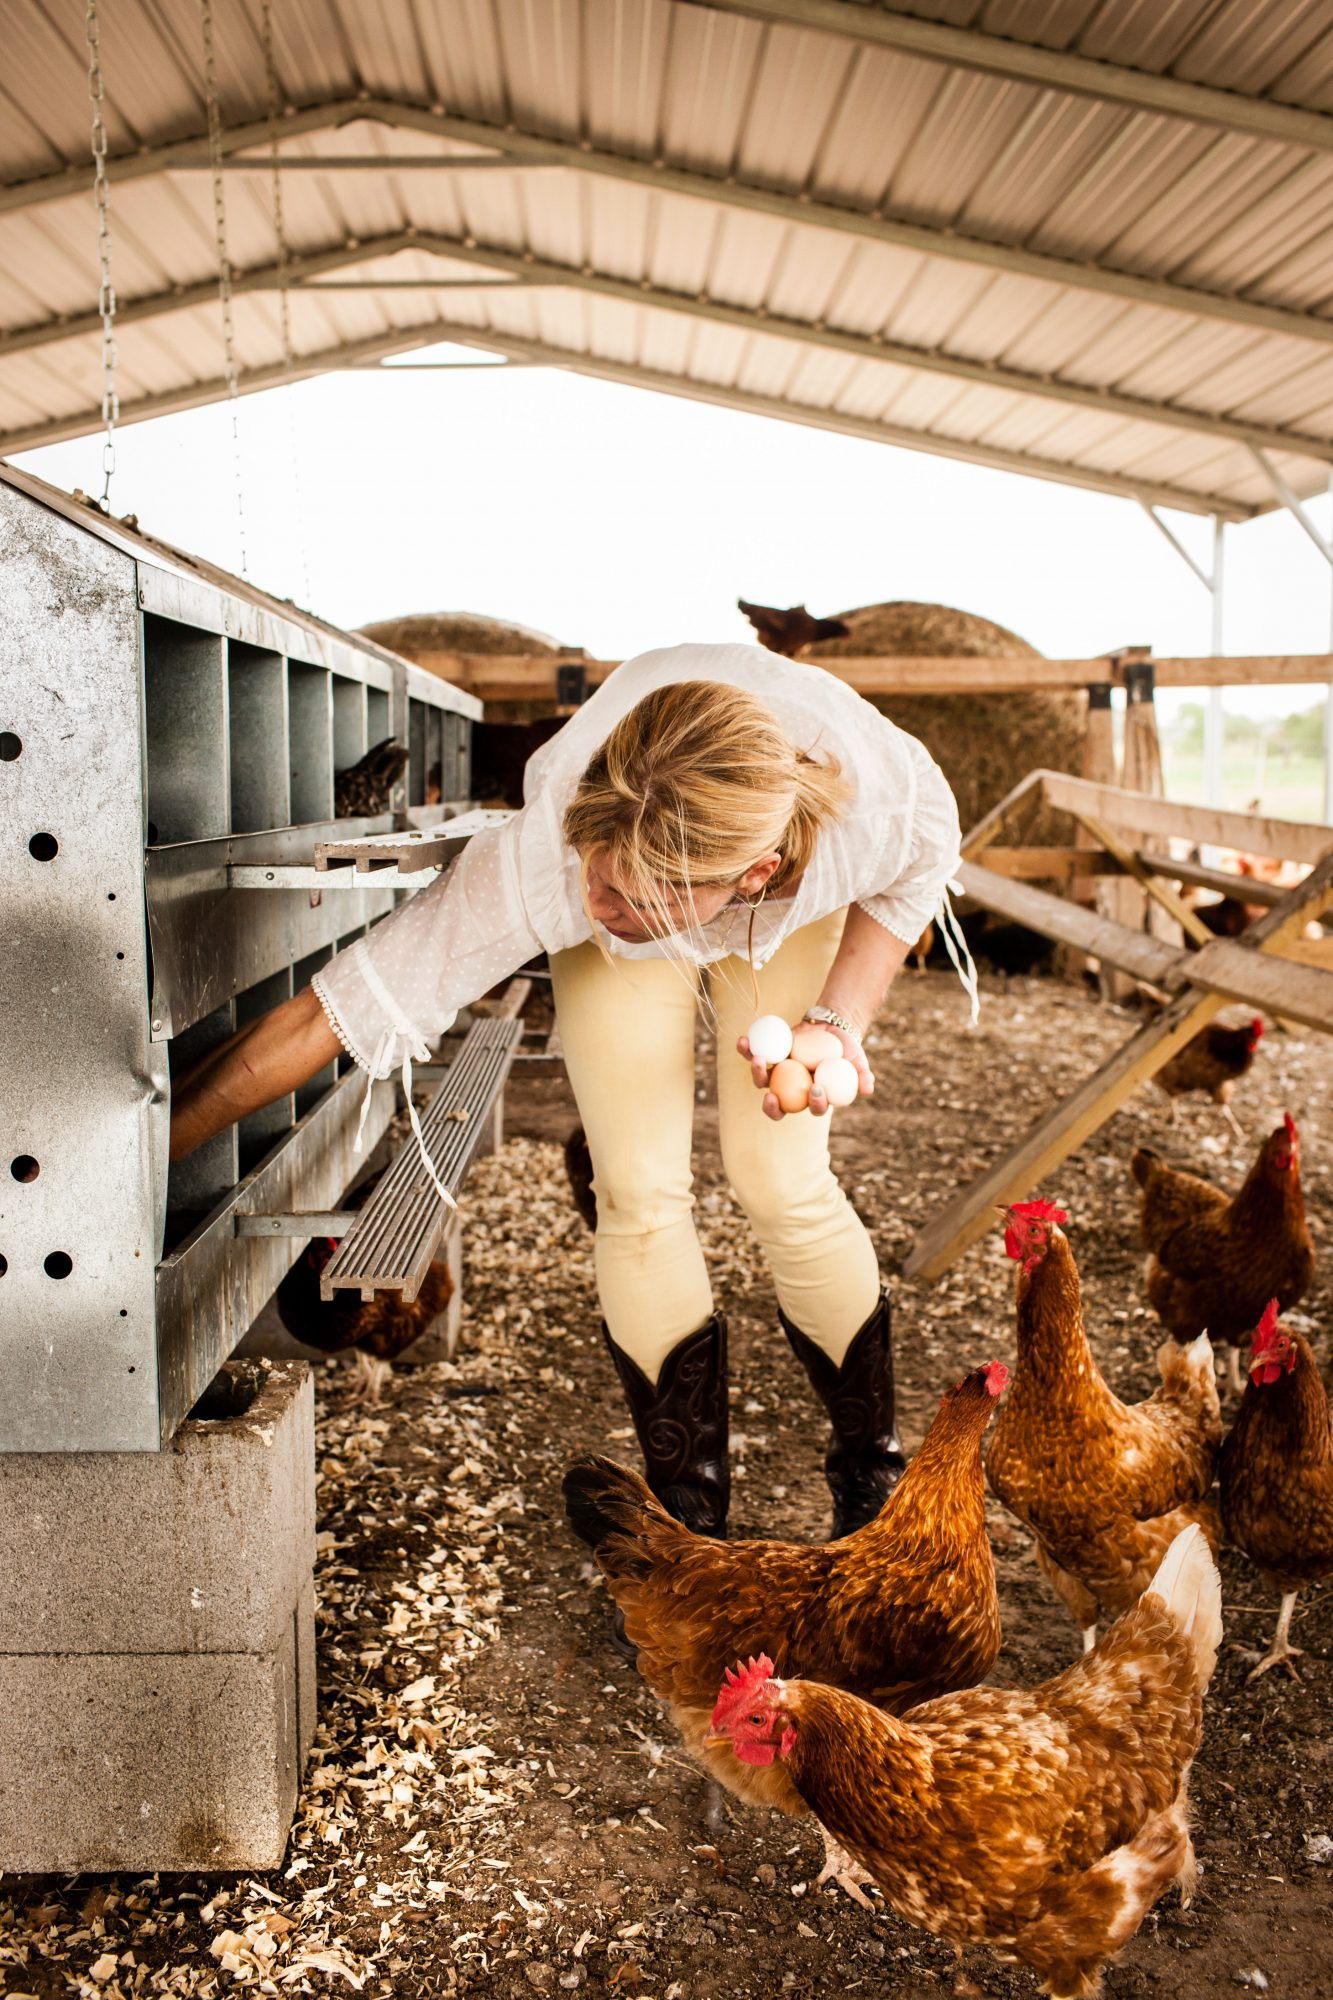 Peeler Farms. Woman (Marianna Peeler) is gathering eggs in chicken coop.